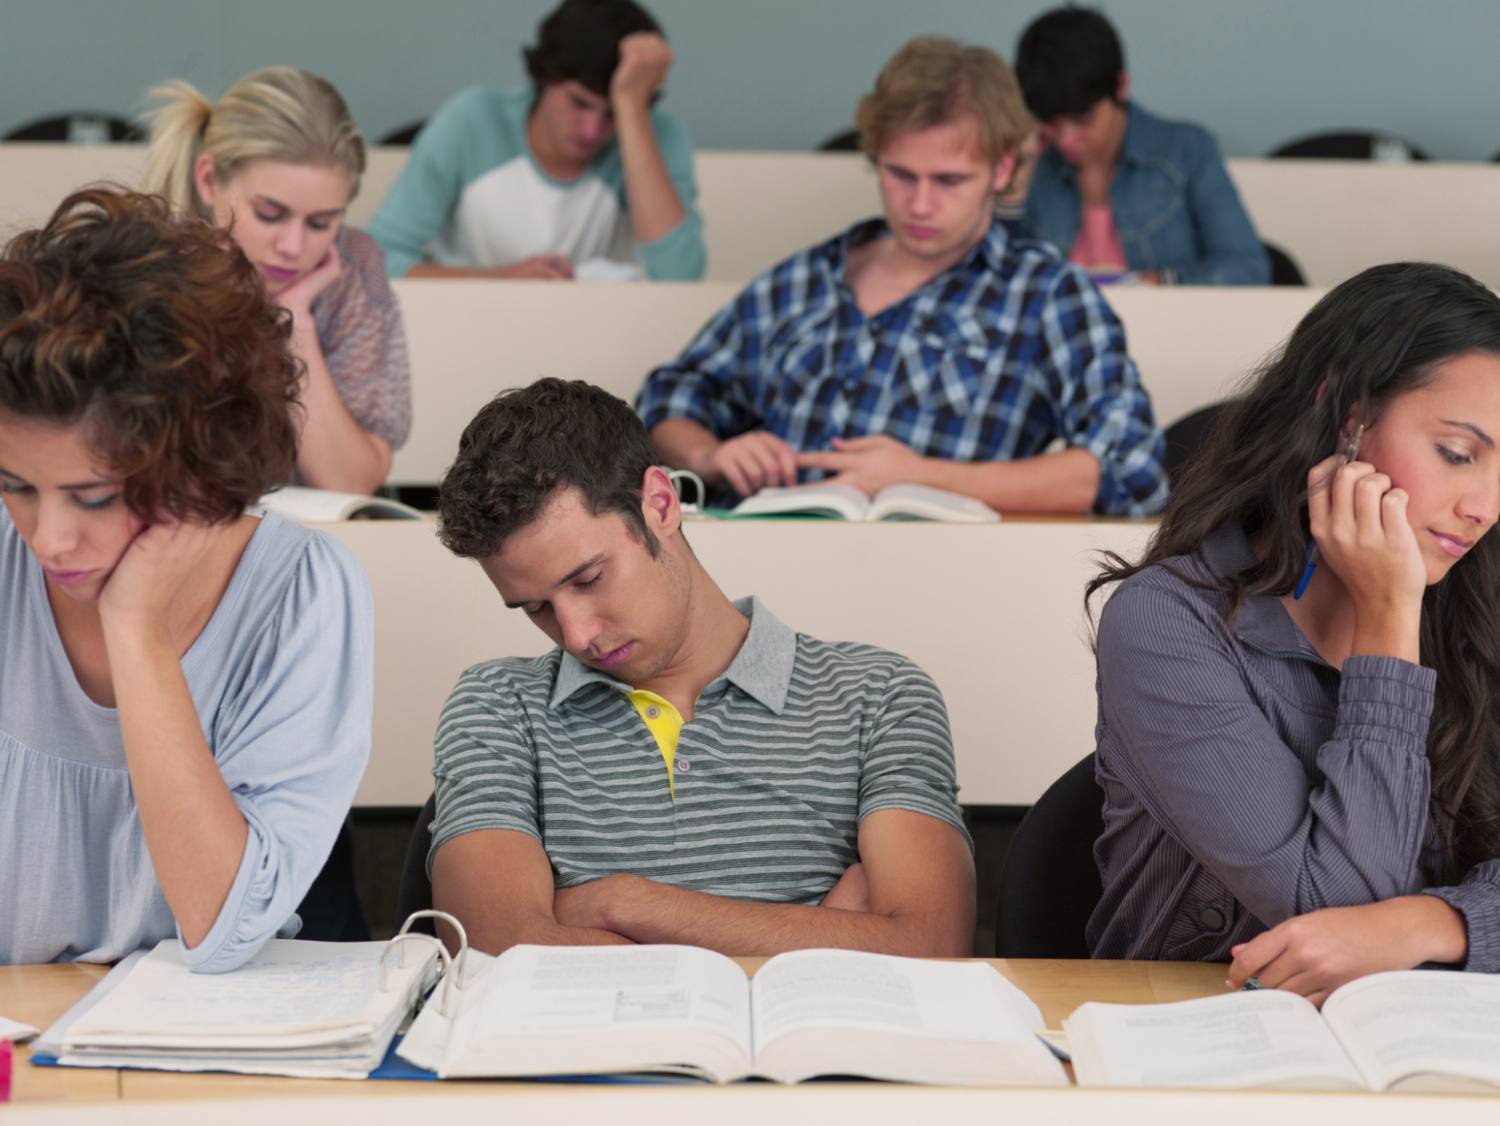 College students in class